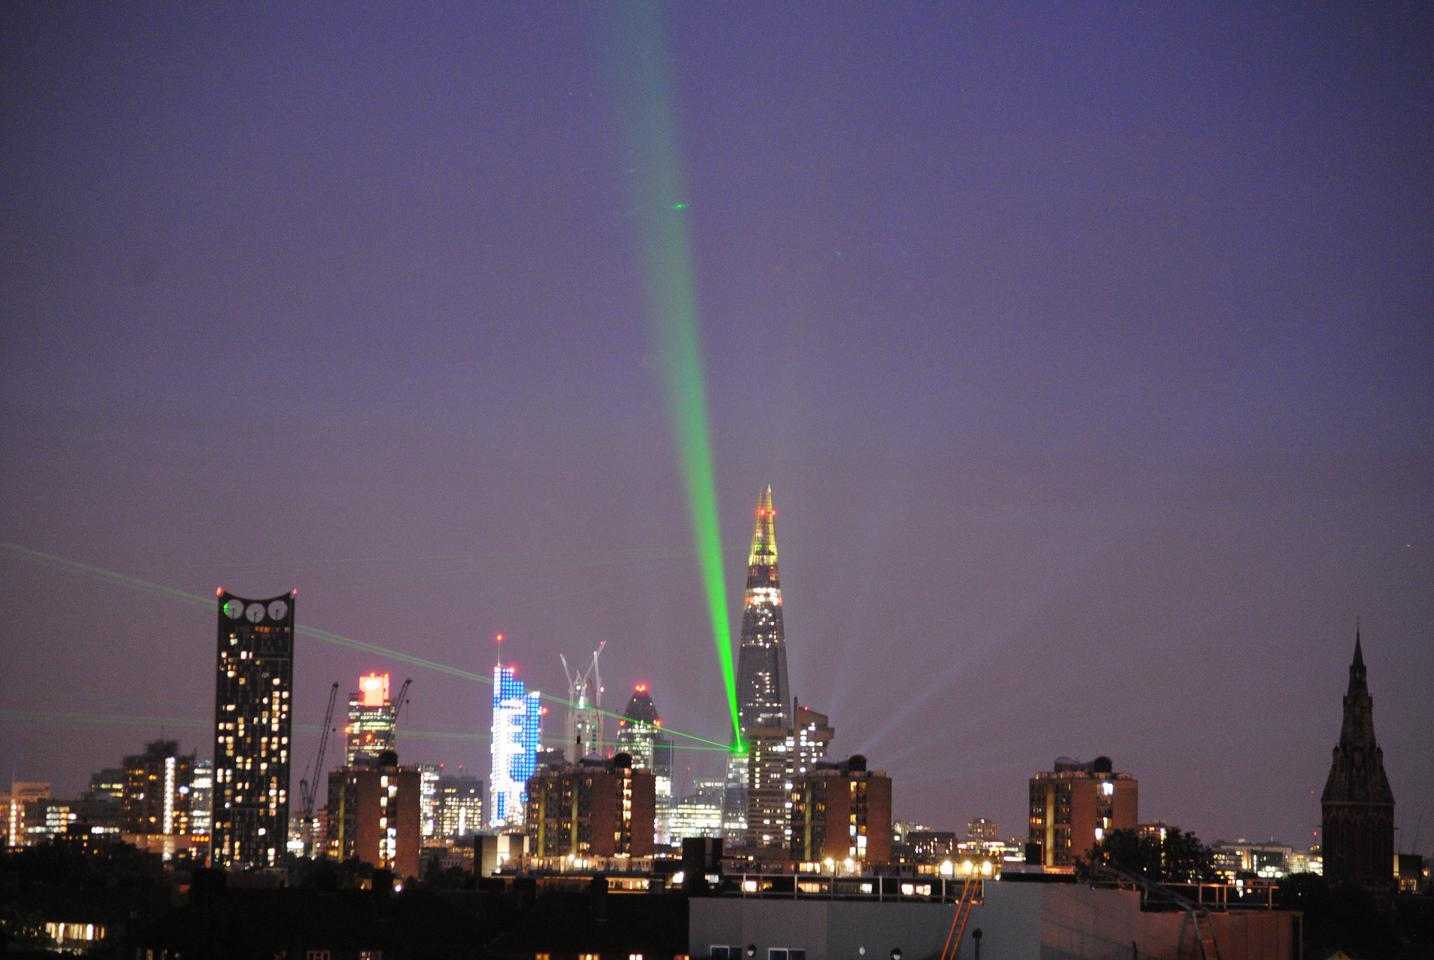 A dozen emerald-green laser beams emanated from the Shard to pick out iconic landmarks including the London Eye, St. Paul's Cathedral and Tower Bridge (1016-ft) Shard in London (Photo: Jenny Brown)